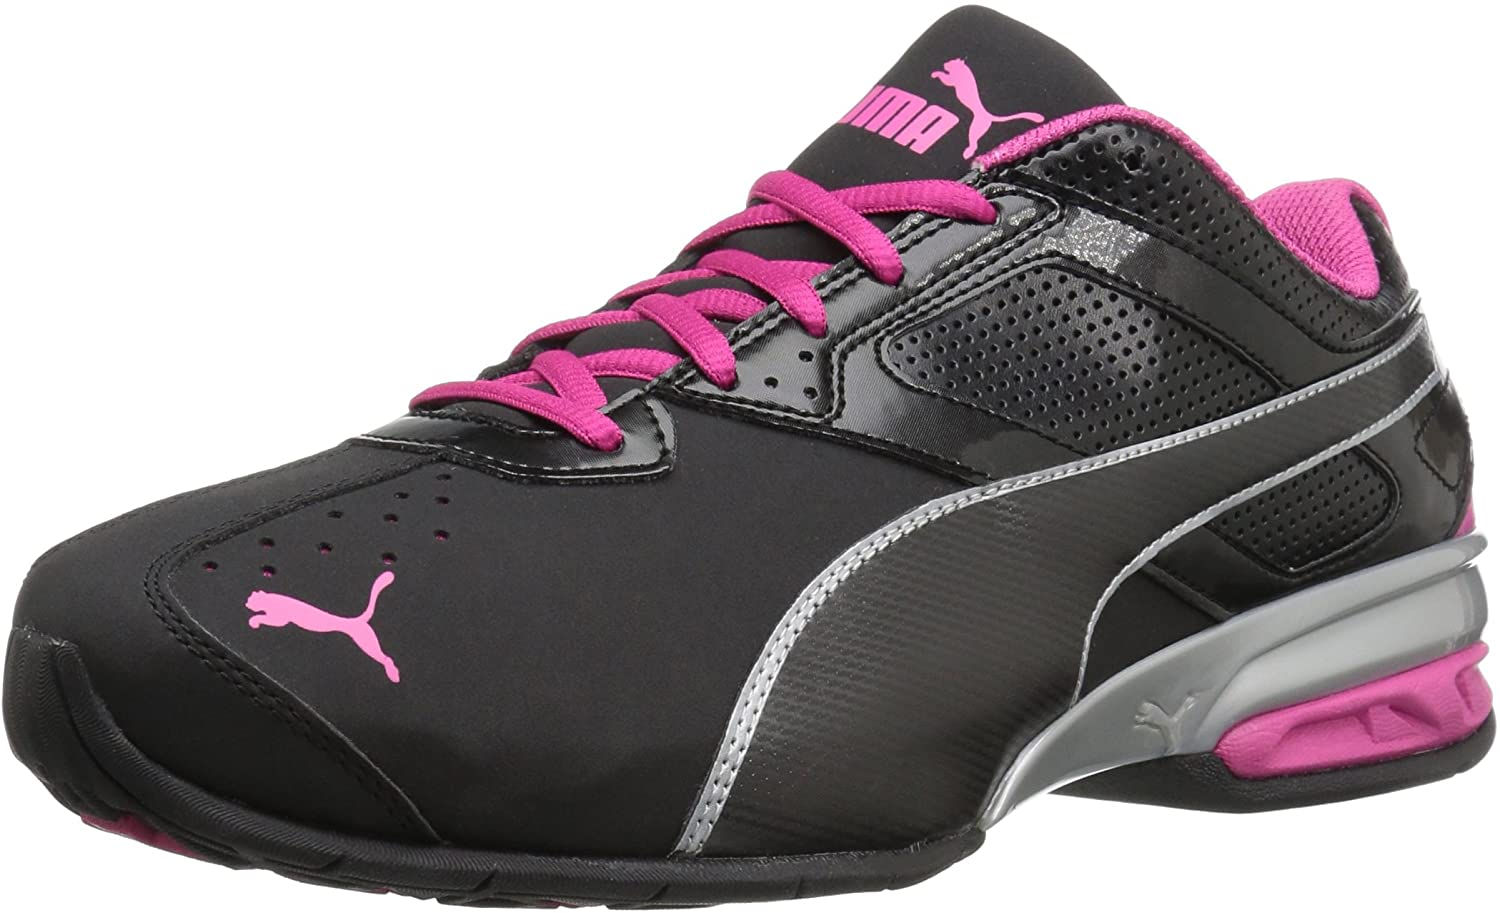 PUMA Women's Tazon 6 WN's FM Cross-Trainer shoes